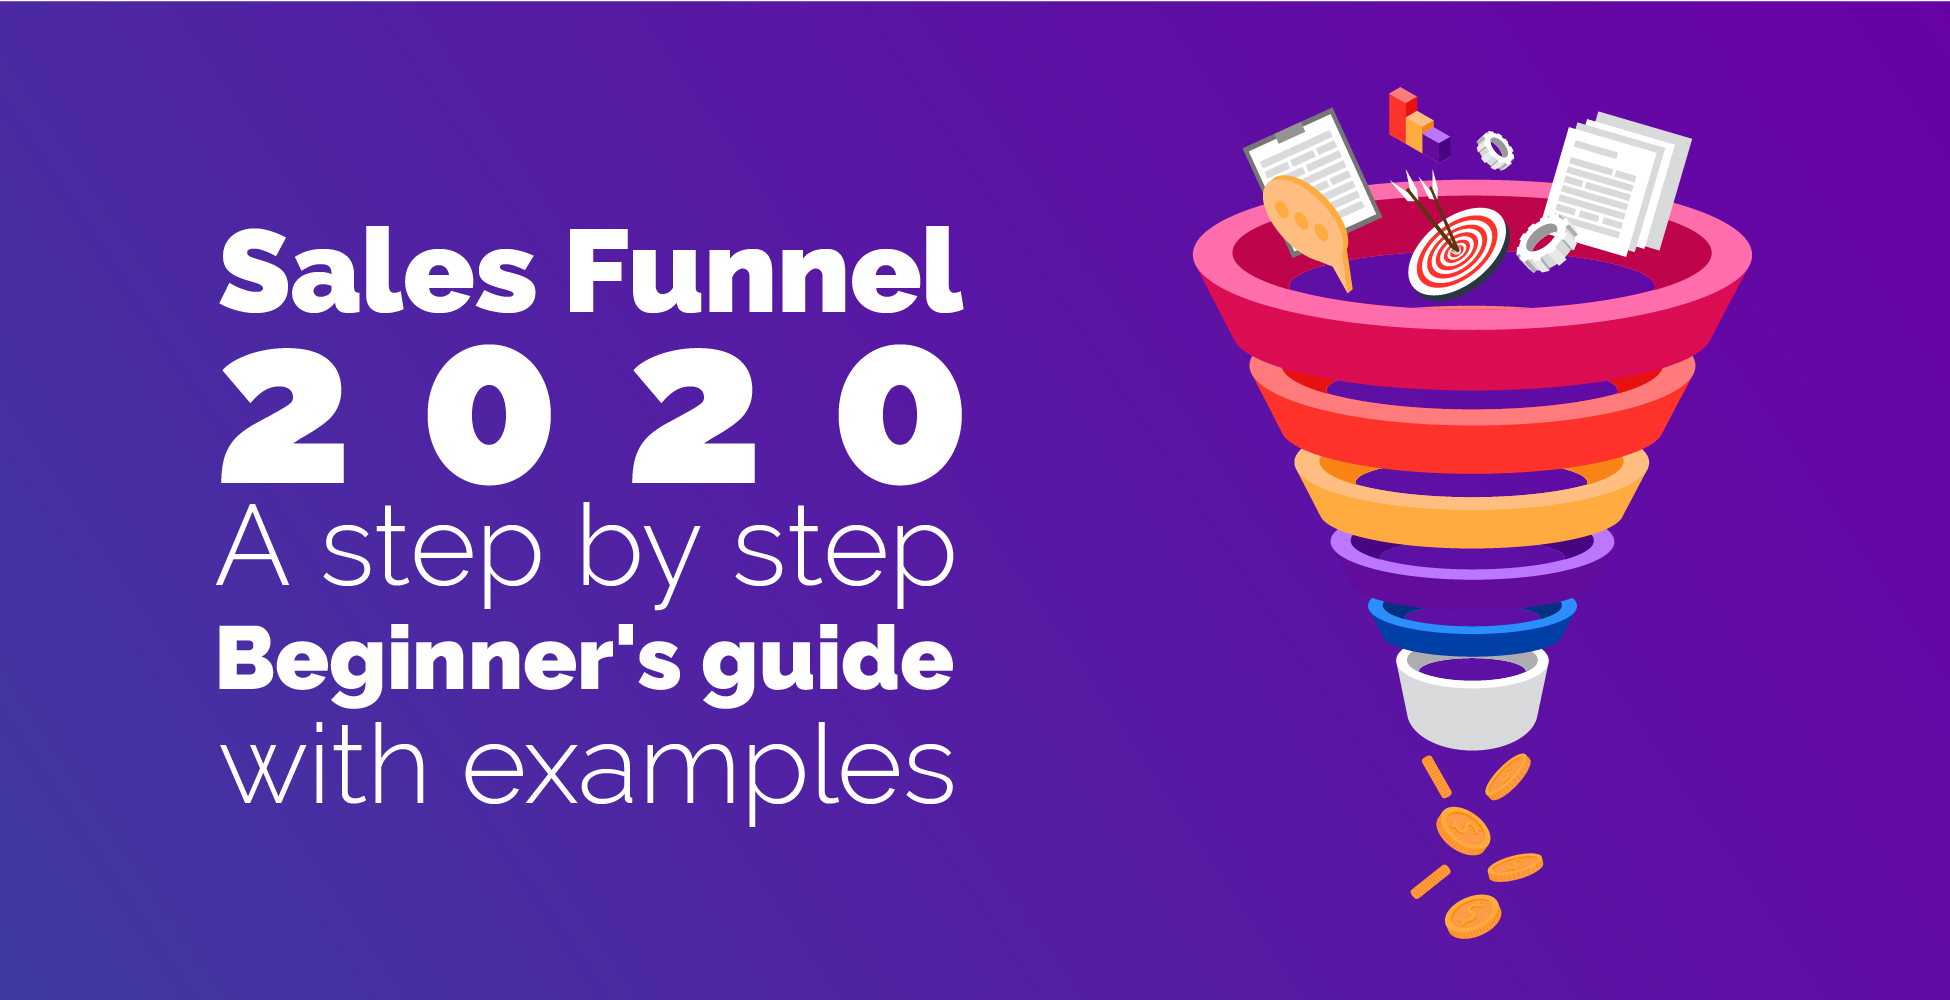 sales funnel 2020 featured